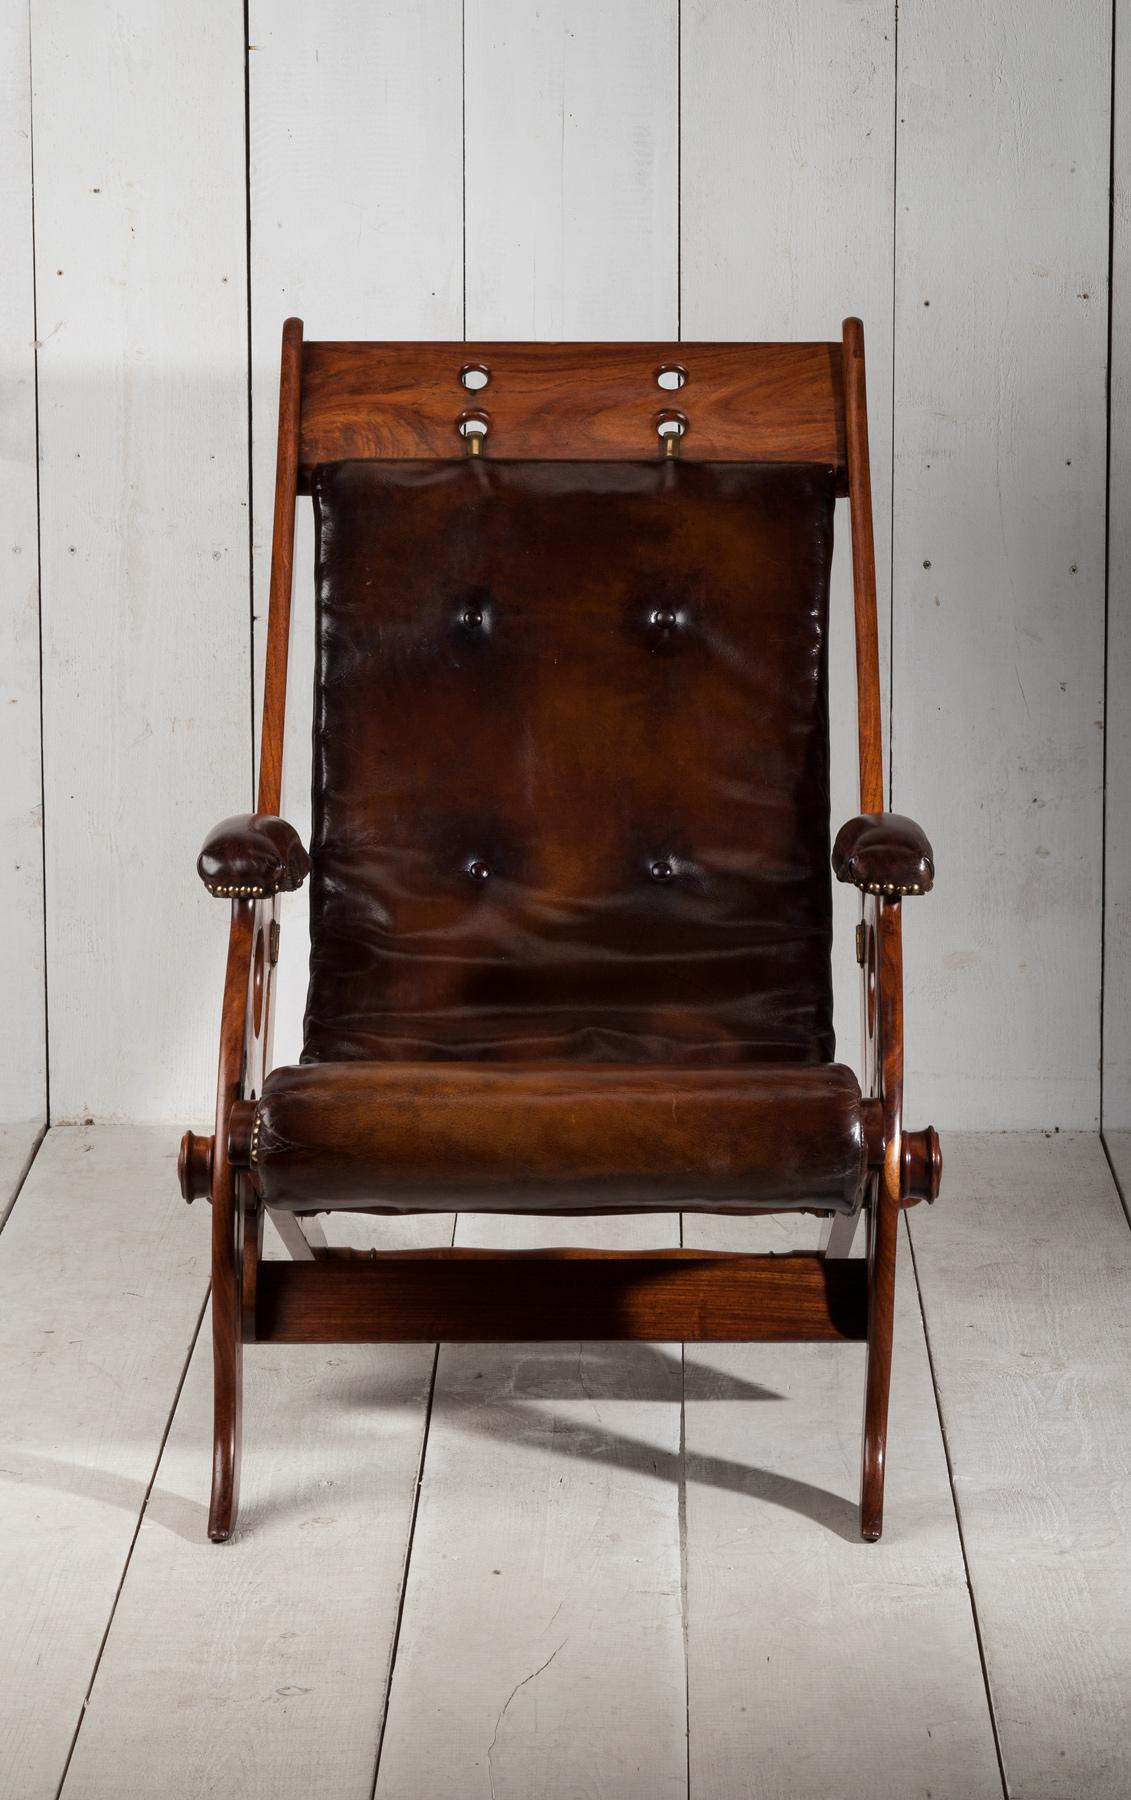 https://www.walpoleantiques.com/sites/default/files/styles/800x800/public/item_images/1767.jpg?itok=51JJewbQ  ... - Deck Chair Walpole Antiques